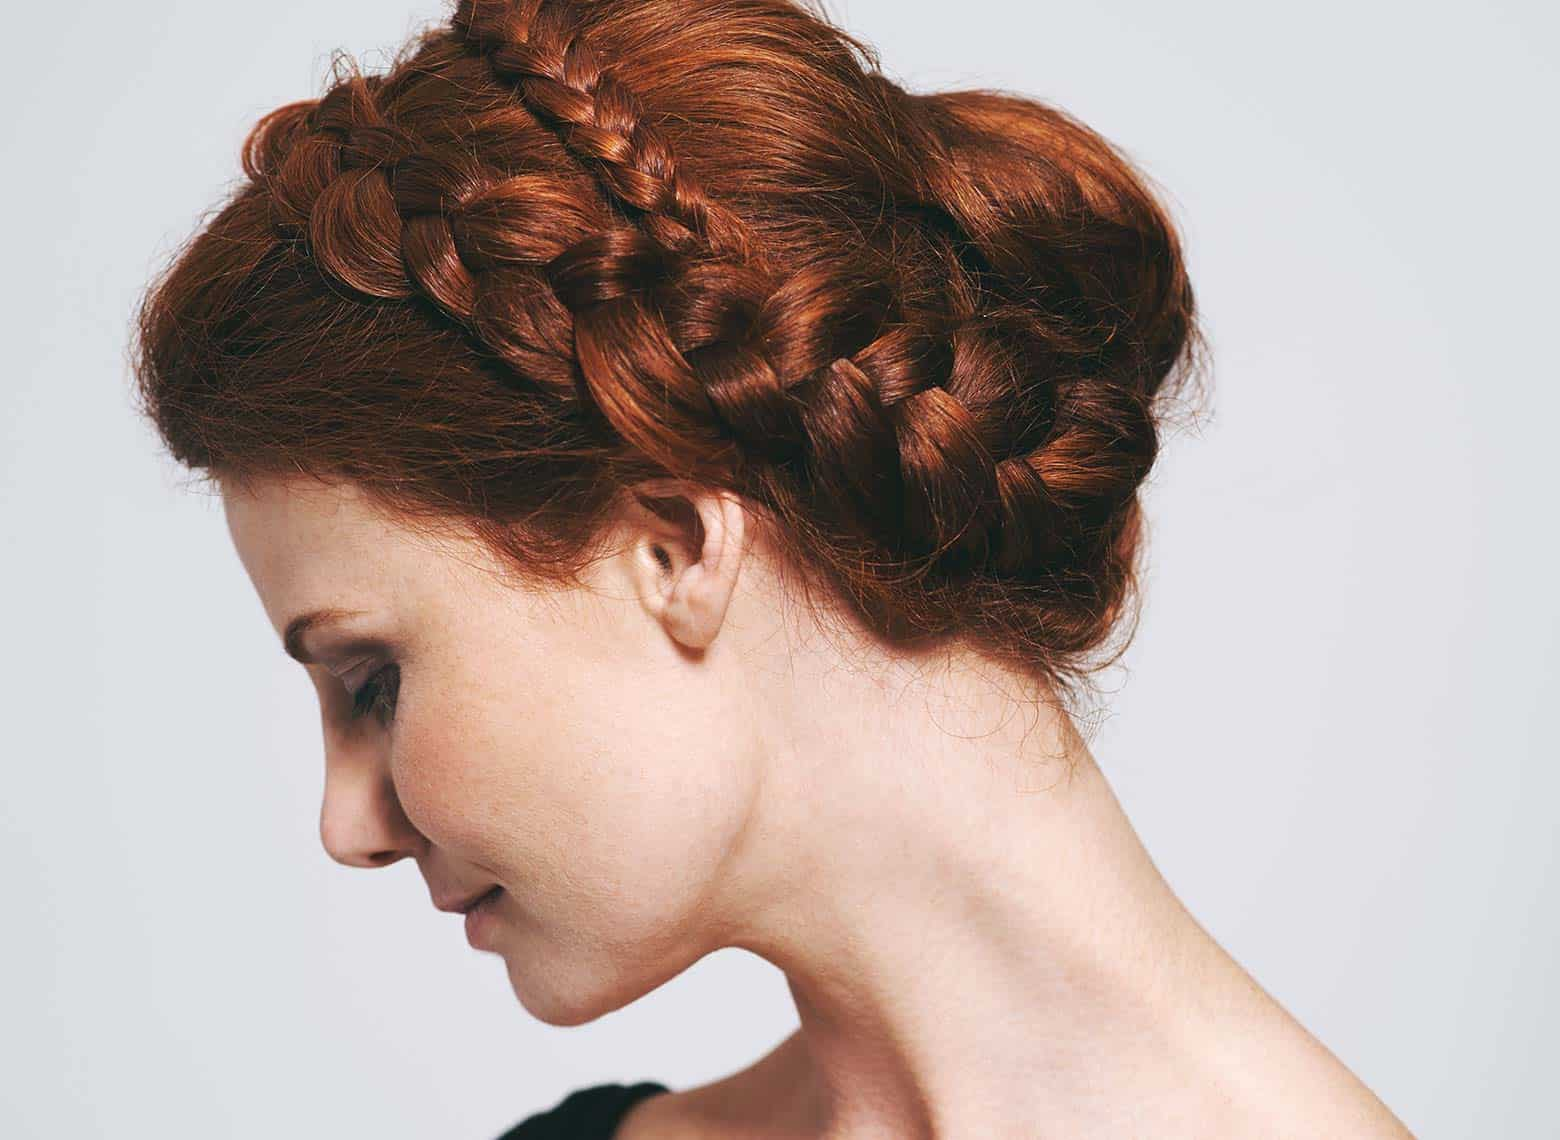 woman with braided updo